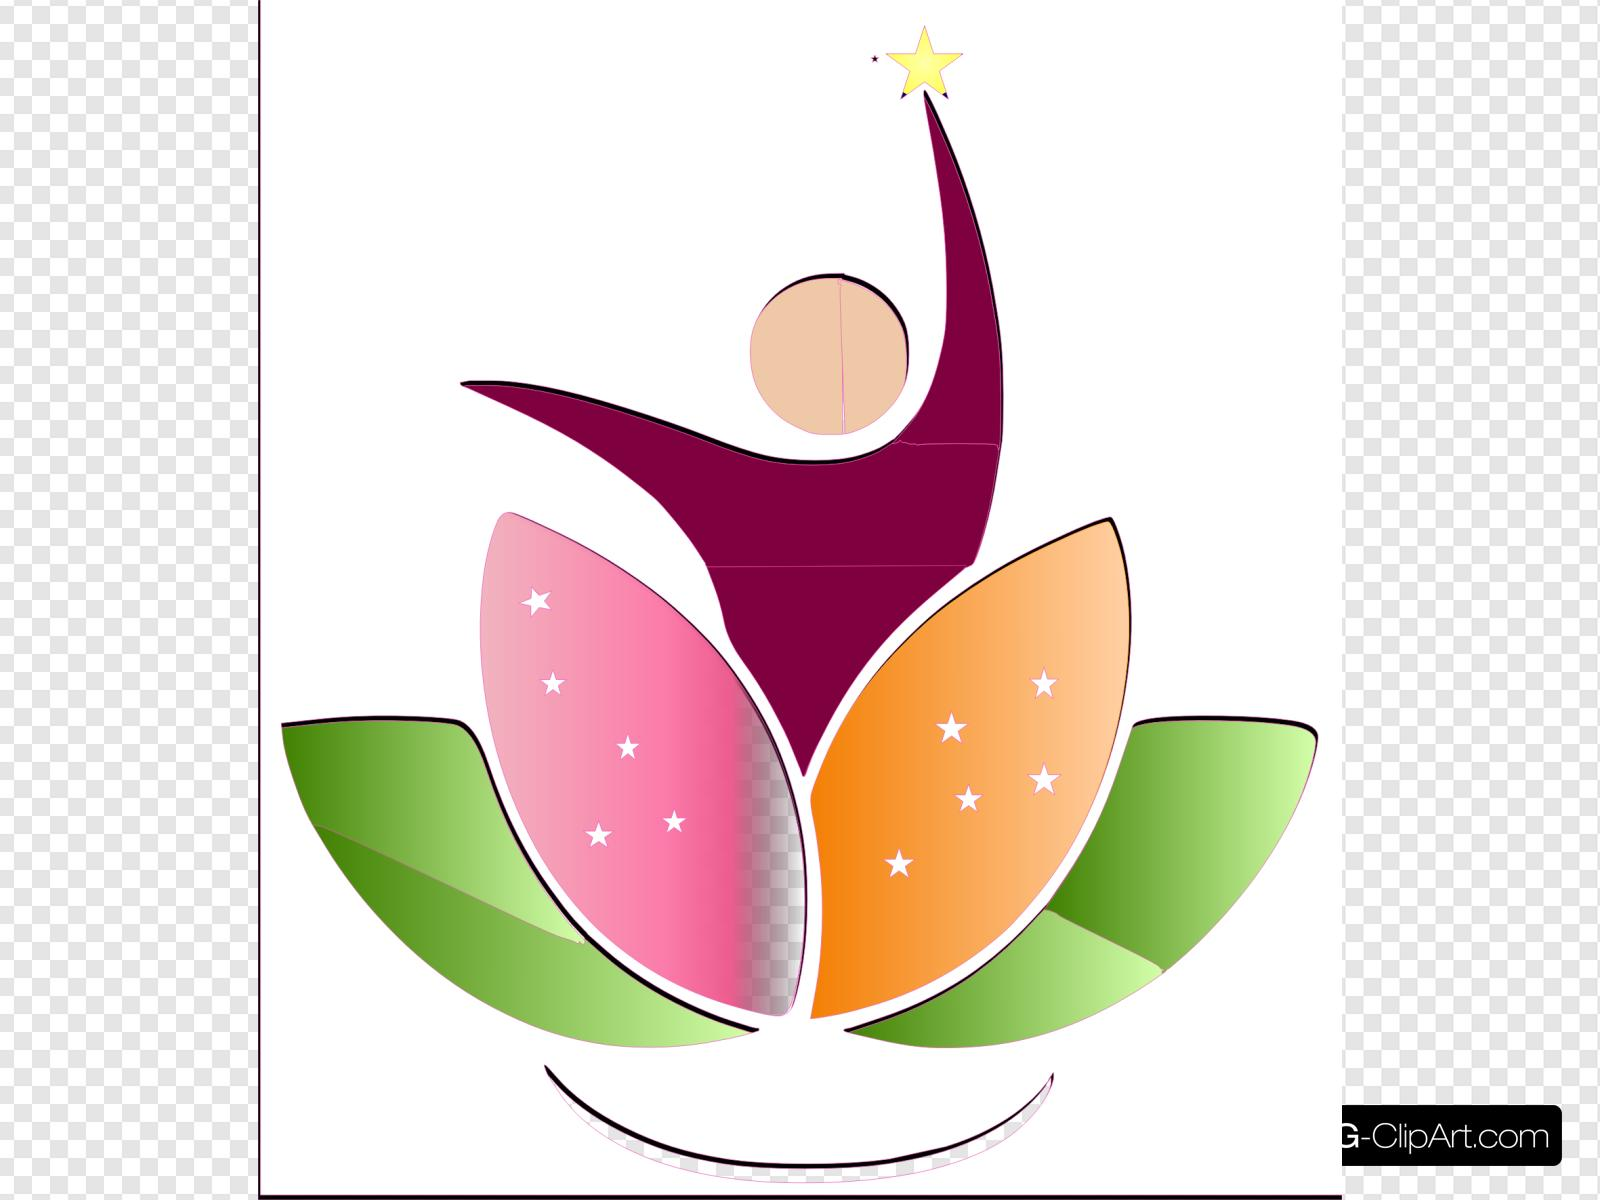 Logo Lotus Elo Clip art, Icon and SVG.